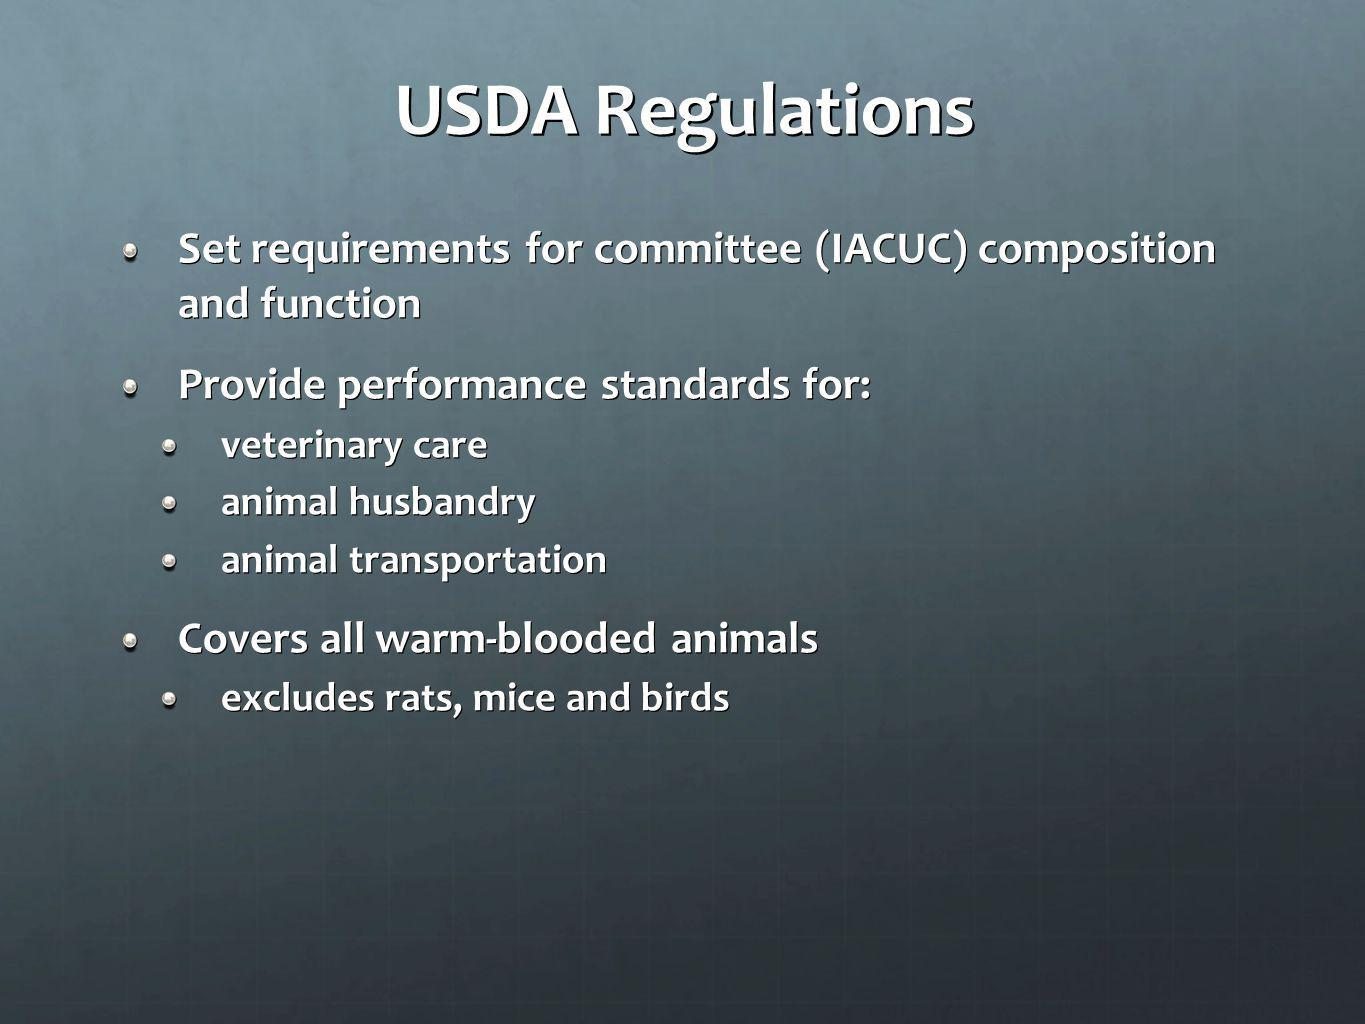 USDA Regulations Set requirements for committee (IACUC) composition and function. Provide performance standards for: